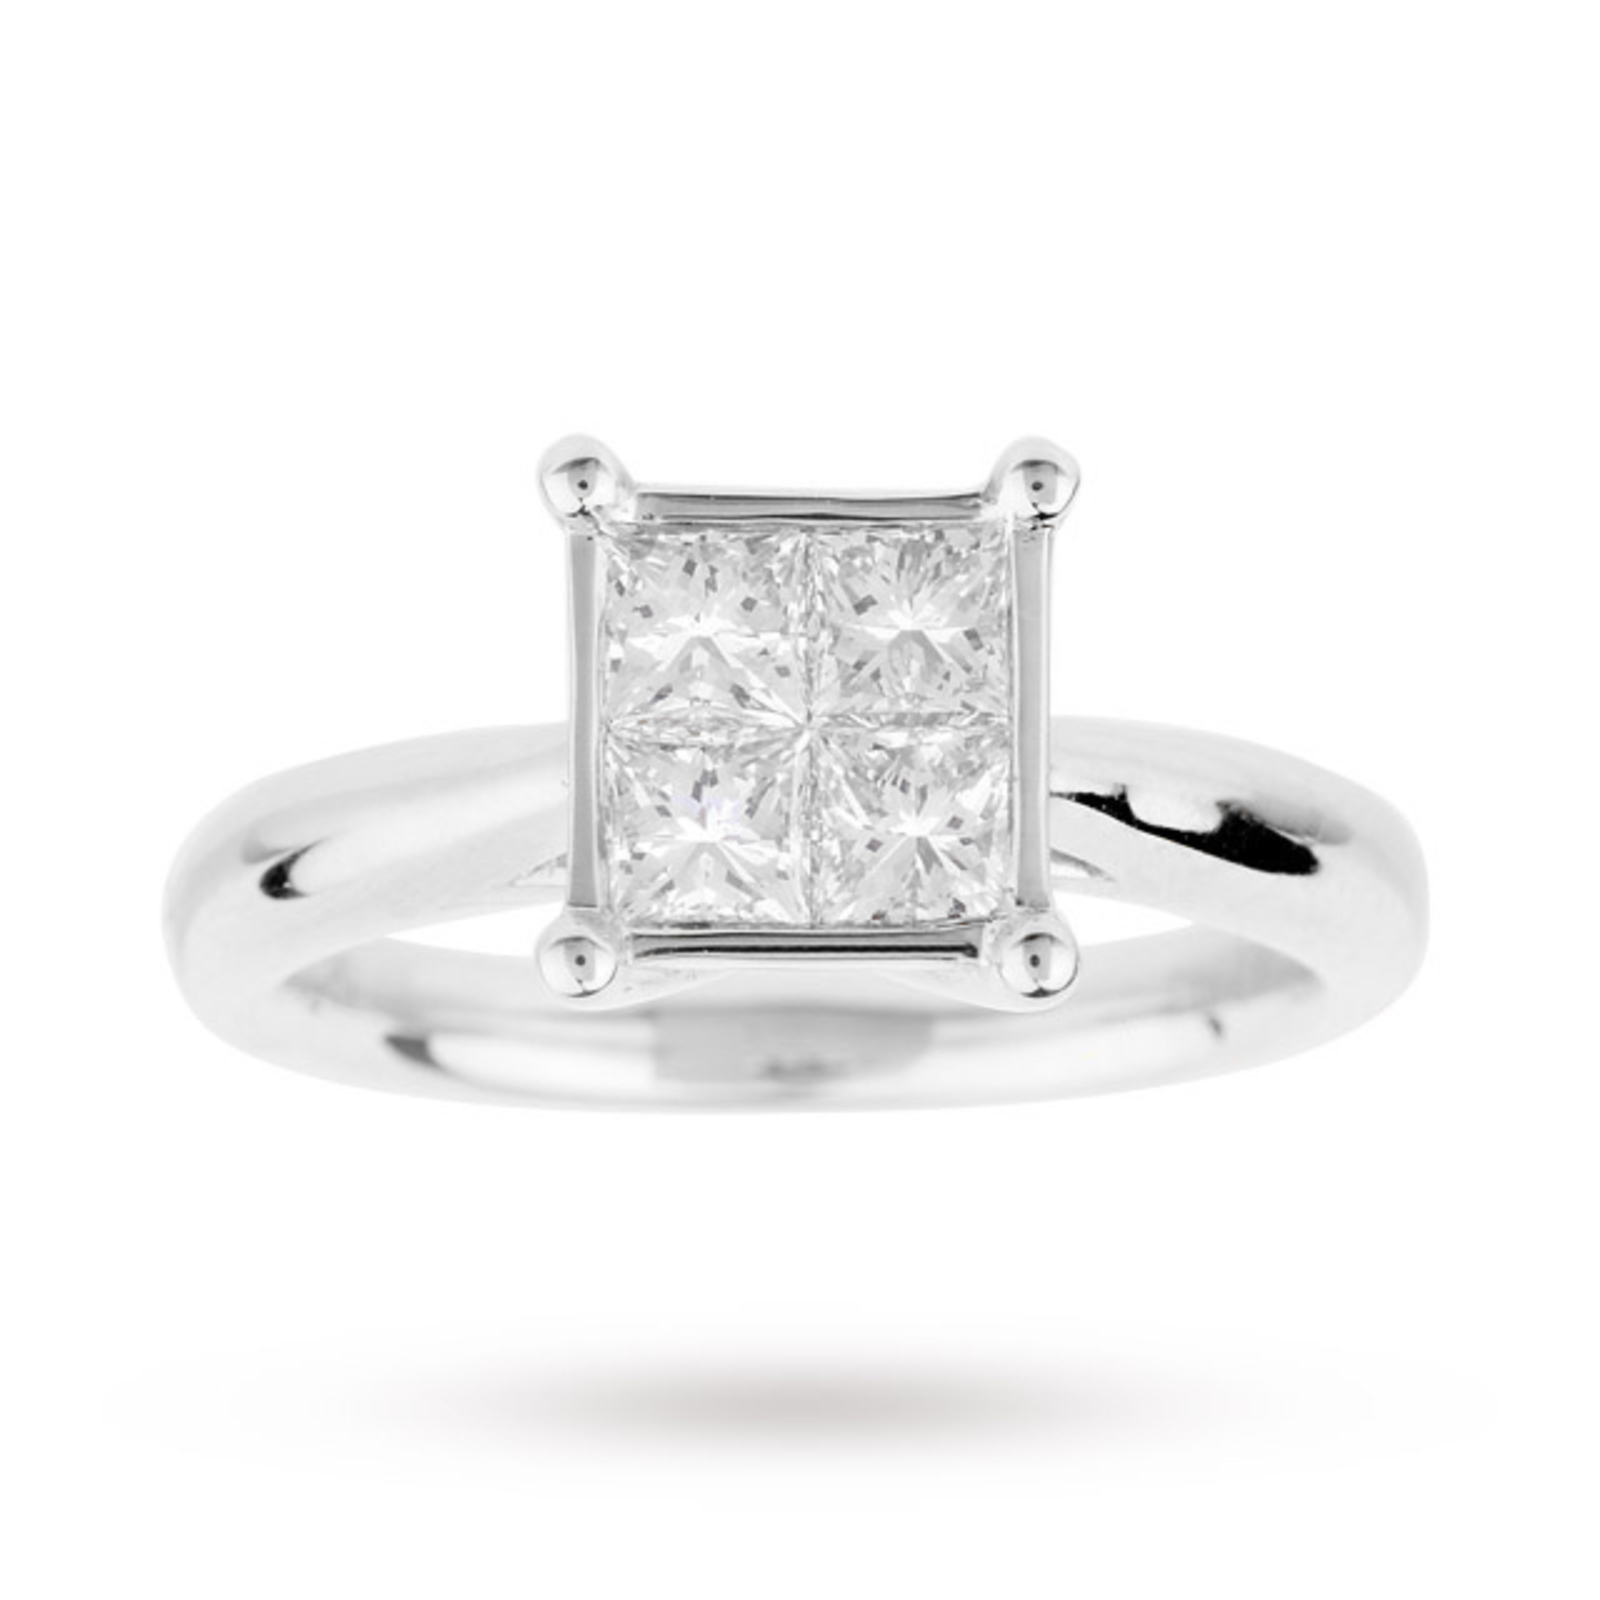 Princess Cut 1 00 Carat Total Weight Invisible Set Diamond Ring Set